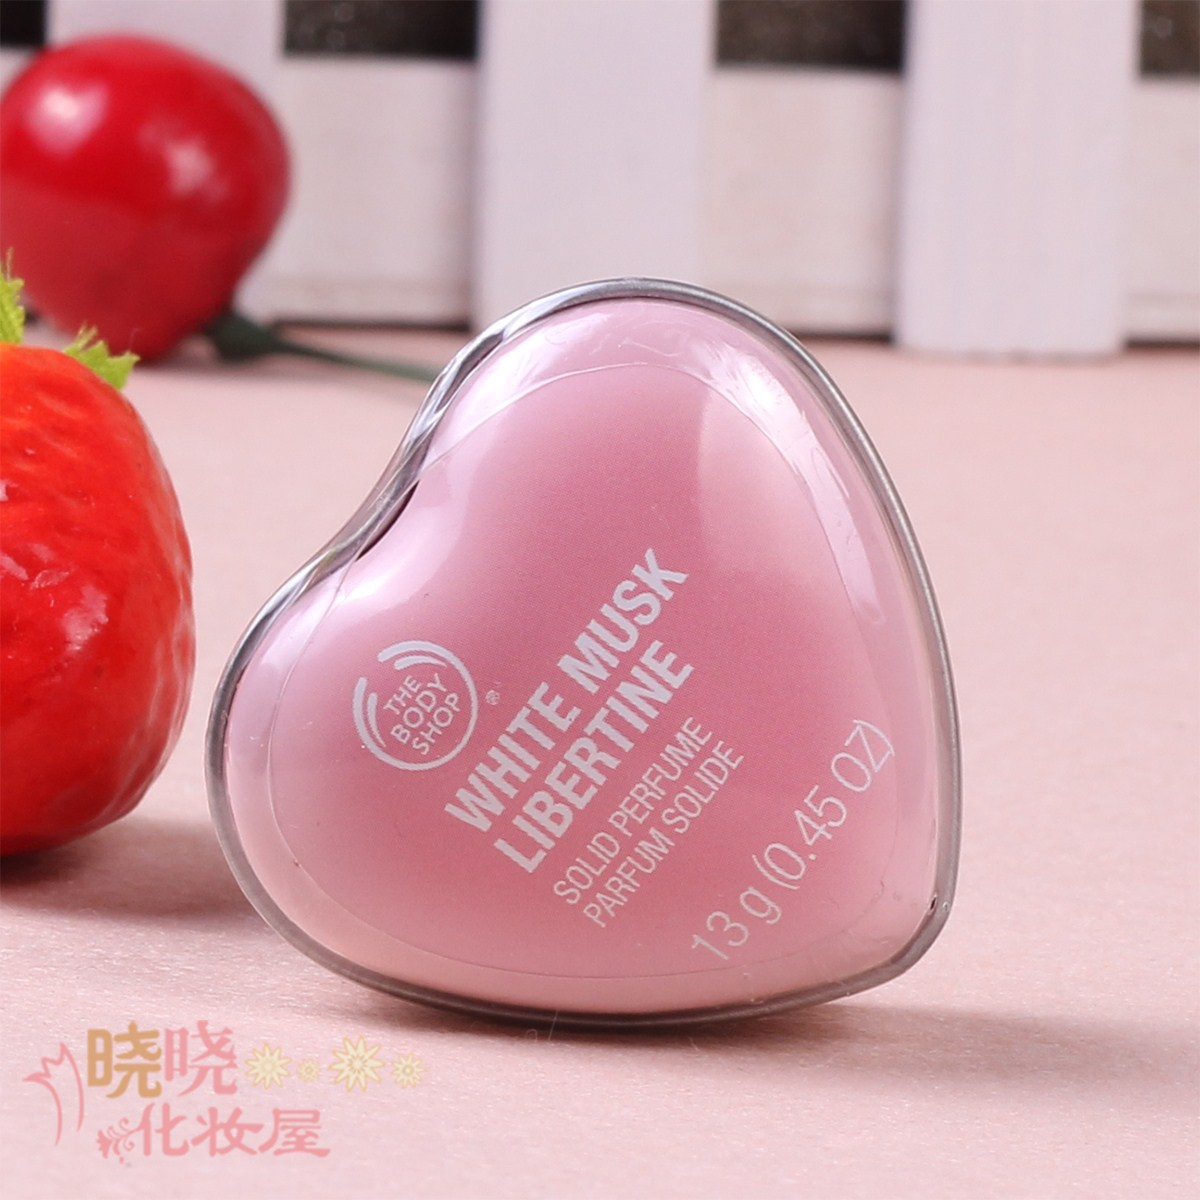 Духи The body shop 13g